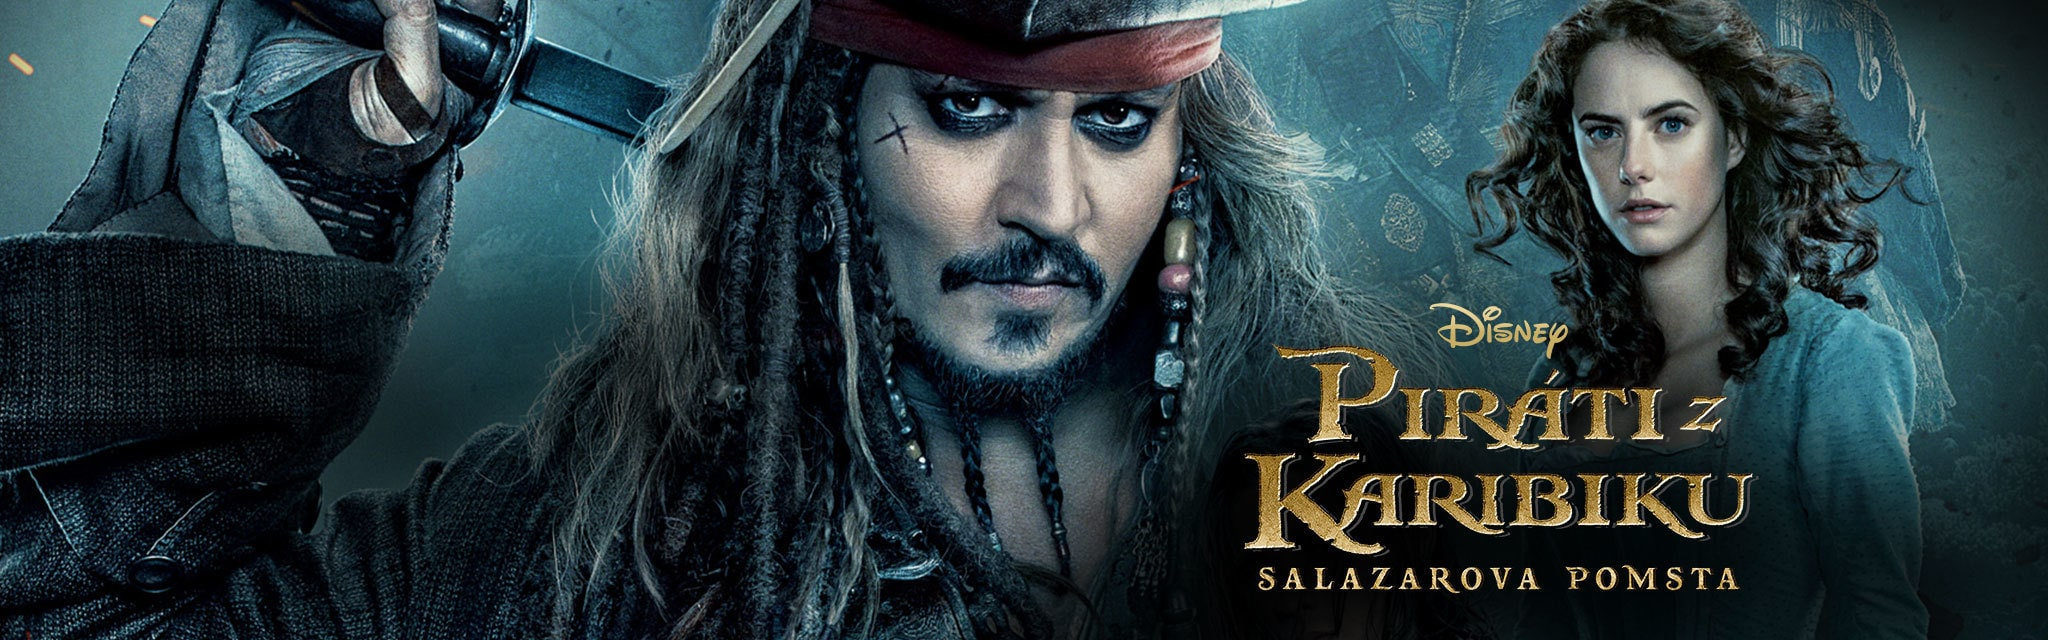 FW Hero - Pirates of the Caribbean 5 - In Cinemas